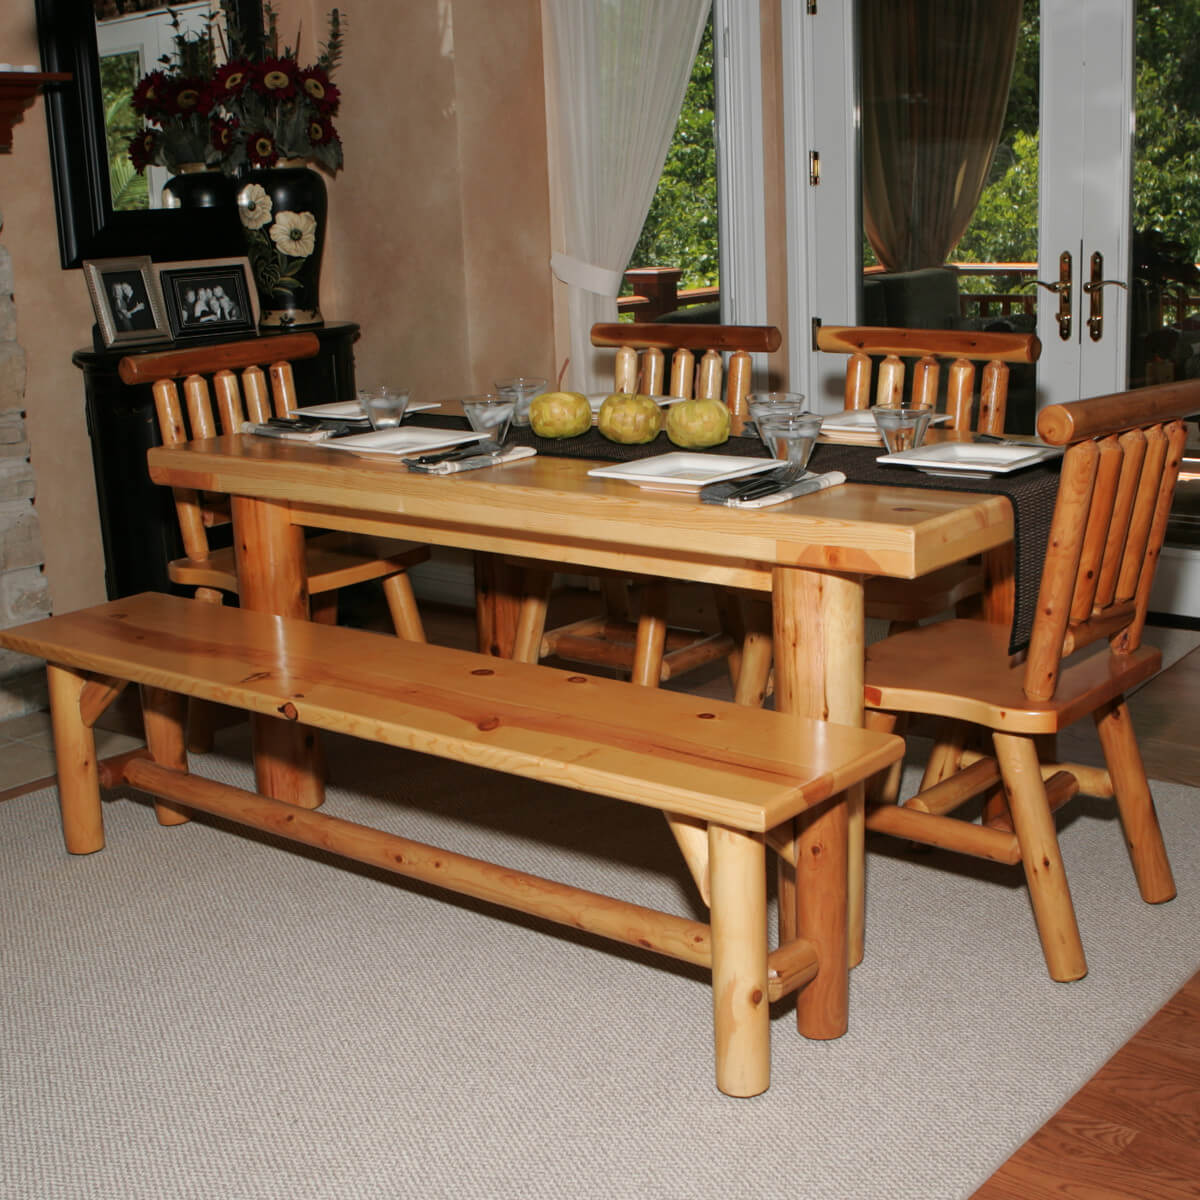 Dinner Table Bench: 26 Big & Small Dining Room Sets With Bench Seating